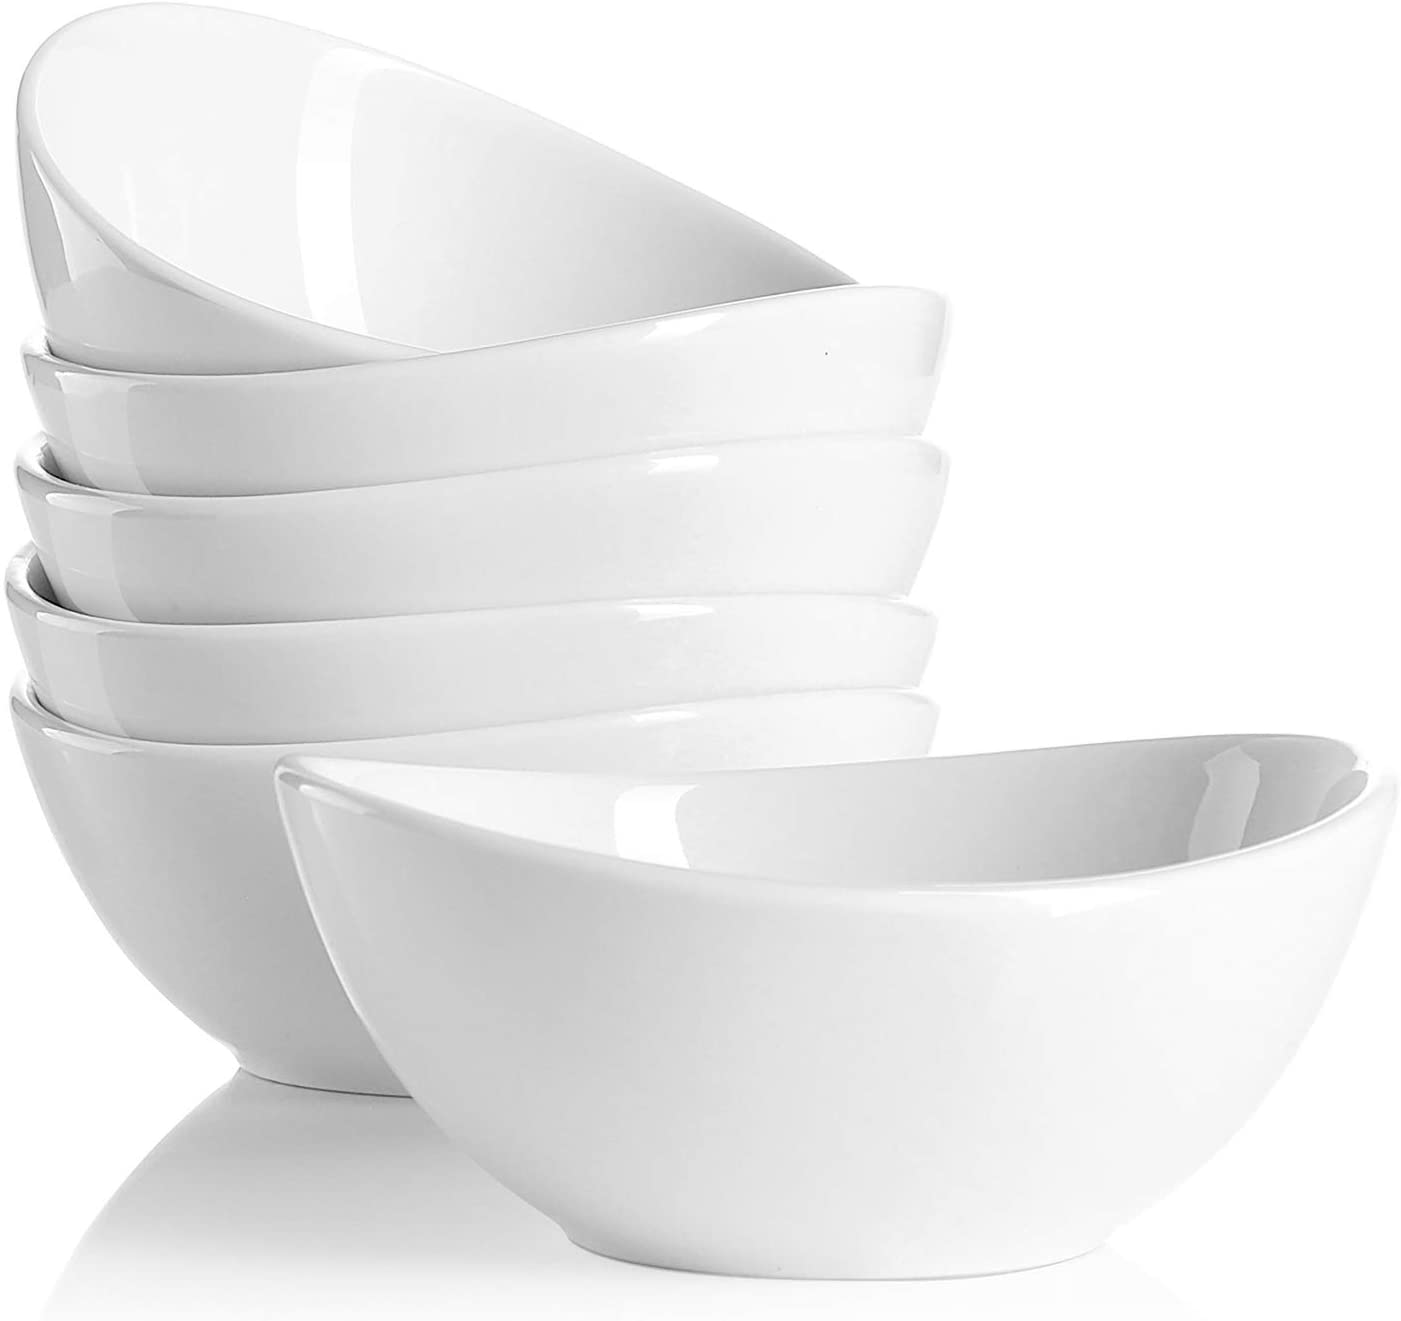 Sweese 101 001 Porcelain Bowls 10 Ounce For Ice Cream Dessert Small Side Dishes Set Of 6 White Kitchen Dining